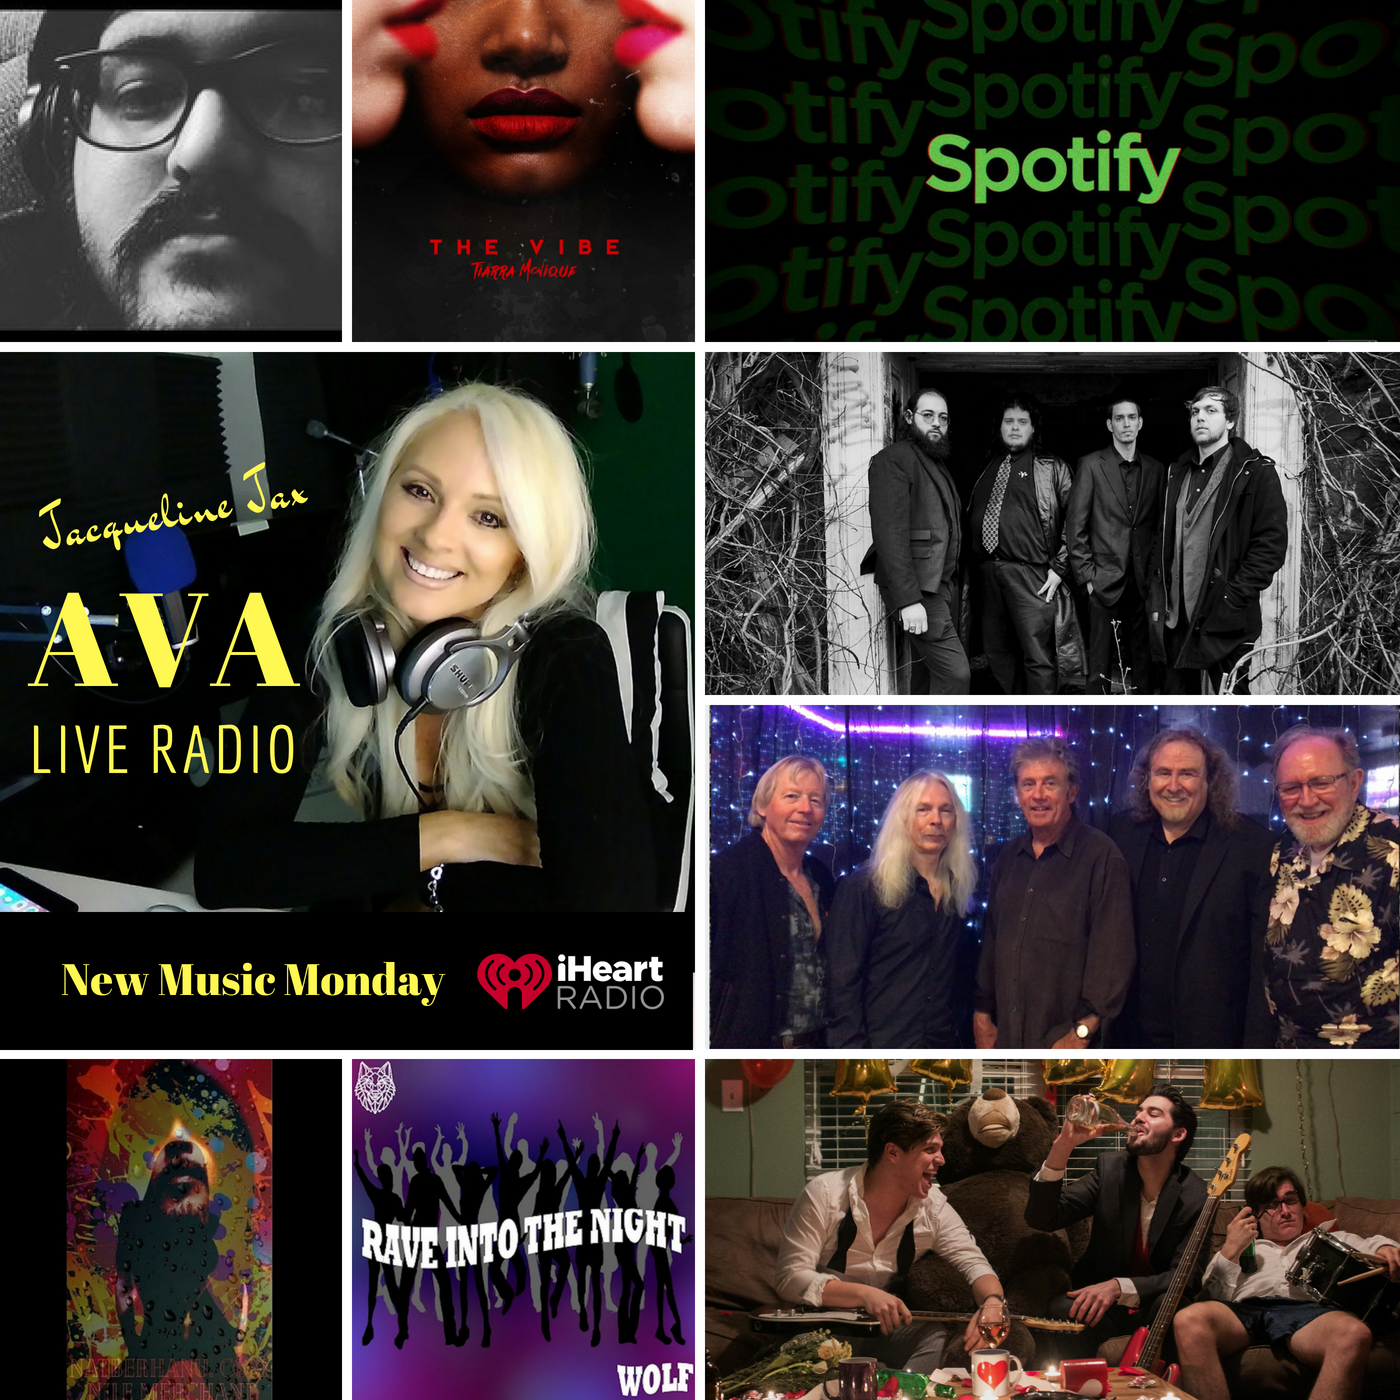 5.28 New Music Monday and Music Business News